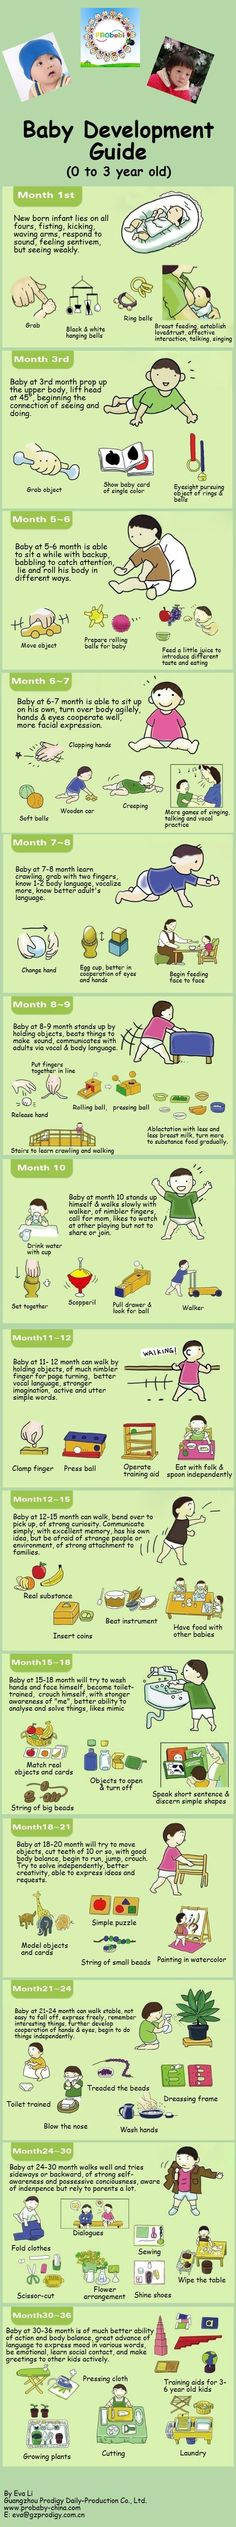 Baby Development Guide | Wont do some of the things suggested but overall a nice info graphic